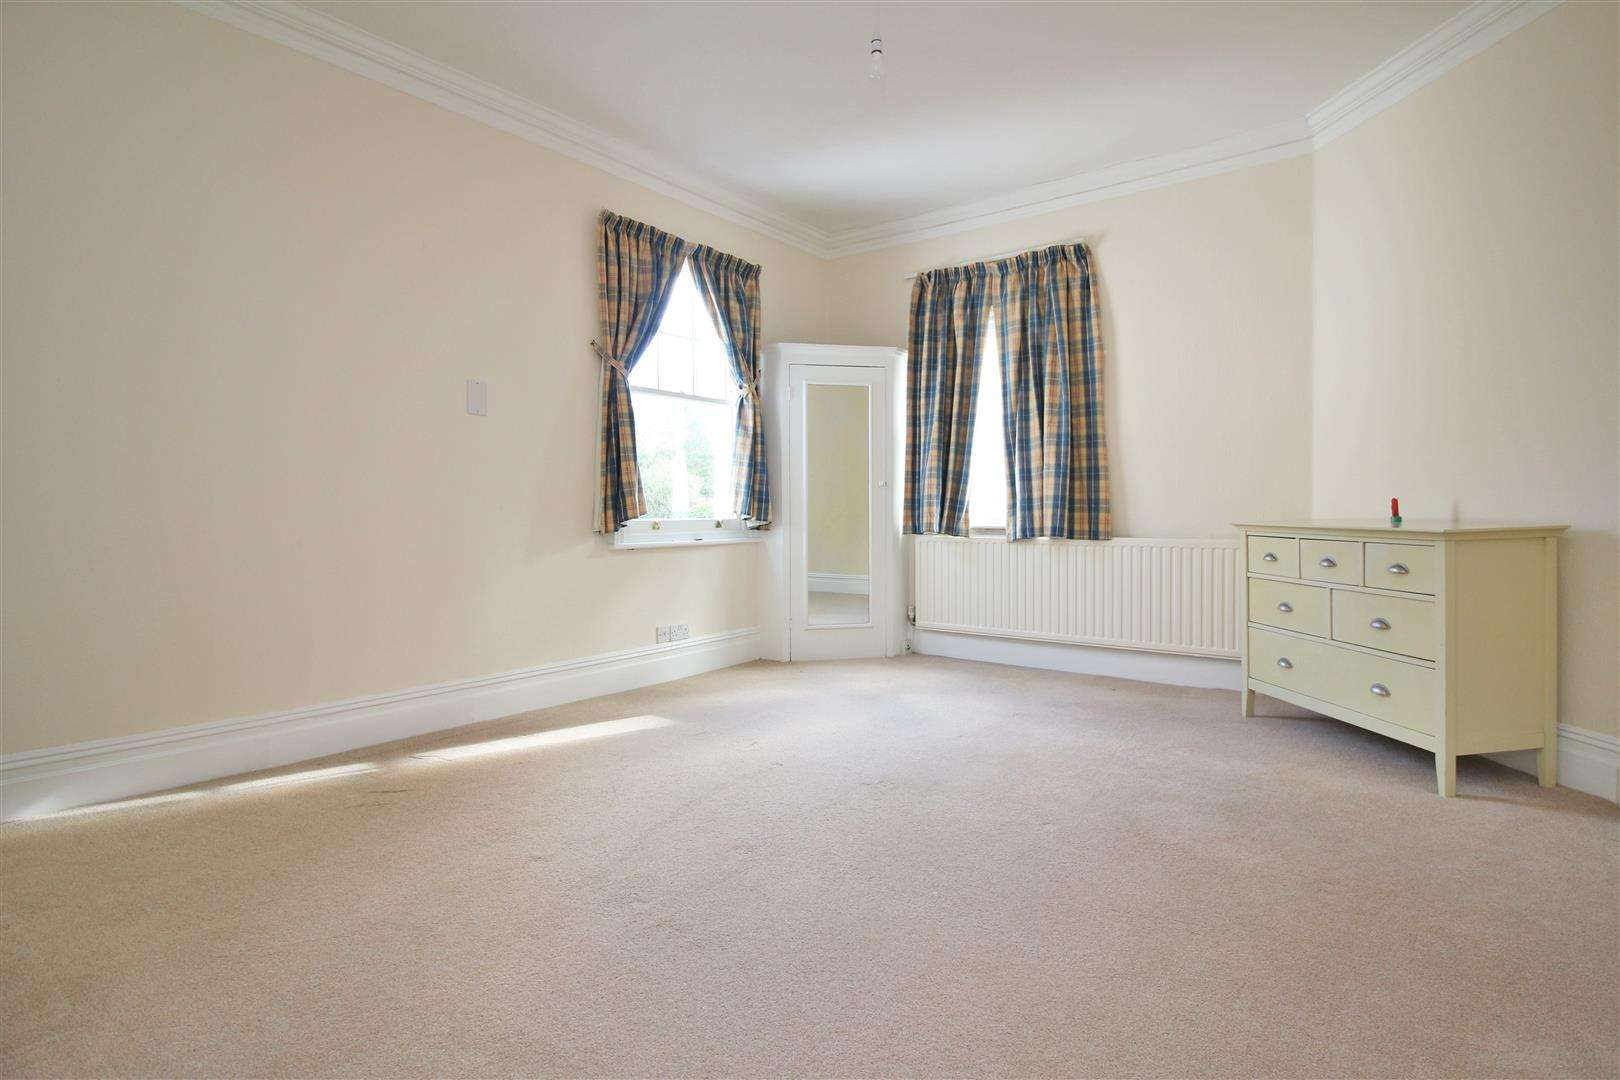 5 bed to rent - (Property Image 14)